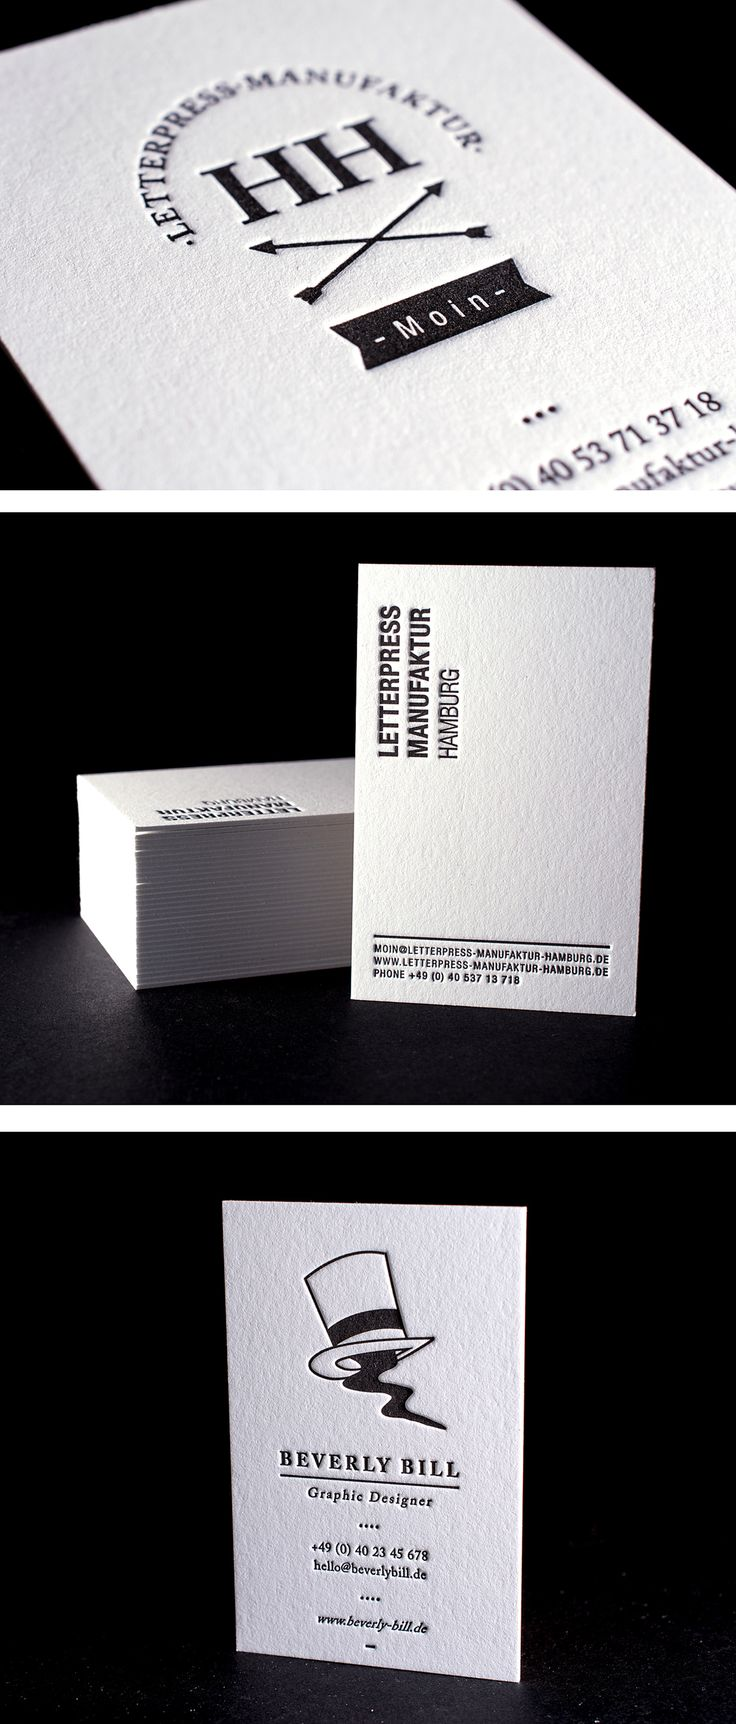 85 best letterpress manufaktur hamburg images on pinterest graphic deep impression printing on 650 gsm letterpress paper with 13 volume jubilee offer for buissness cardsboston stylevisit cardsbusiness colourmoves